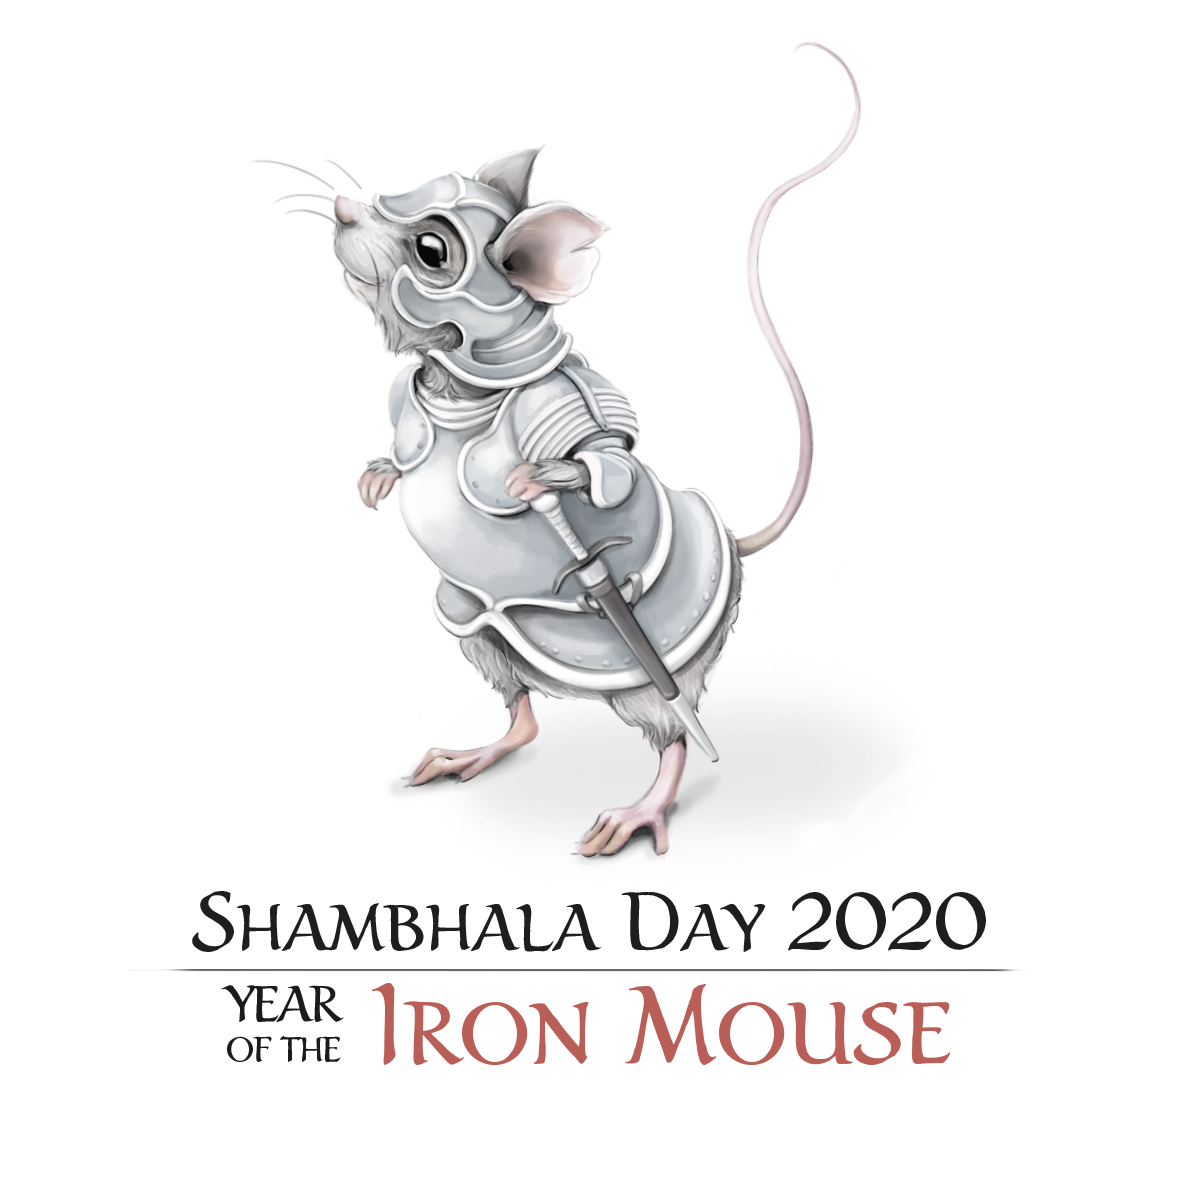 Haarlem/iron_mouse.png